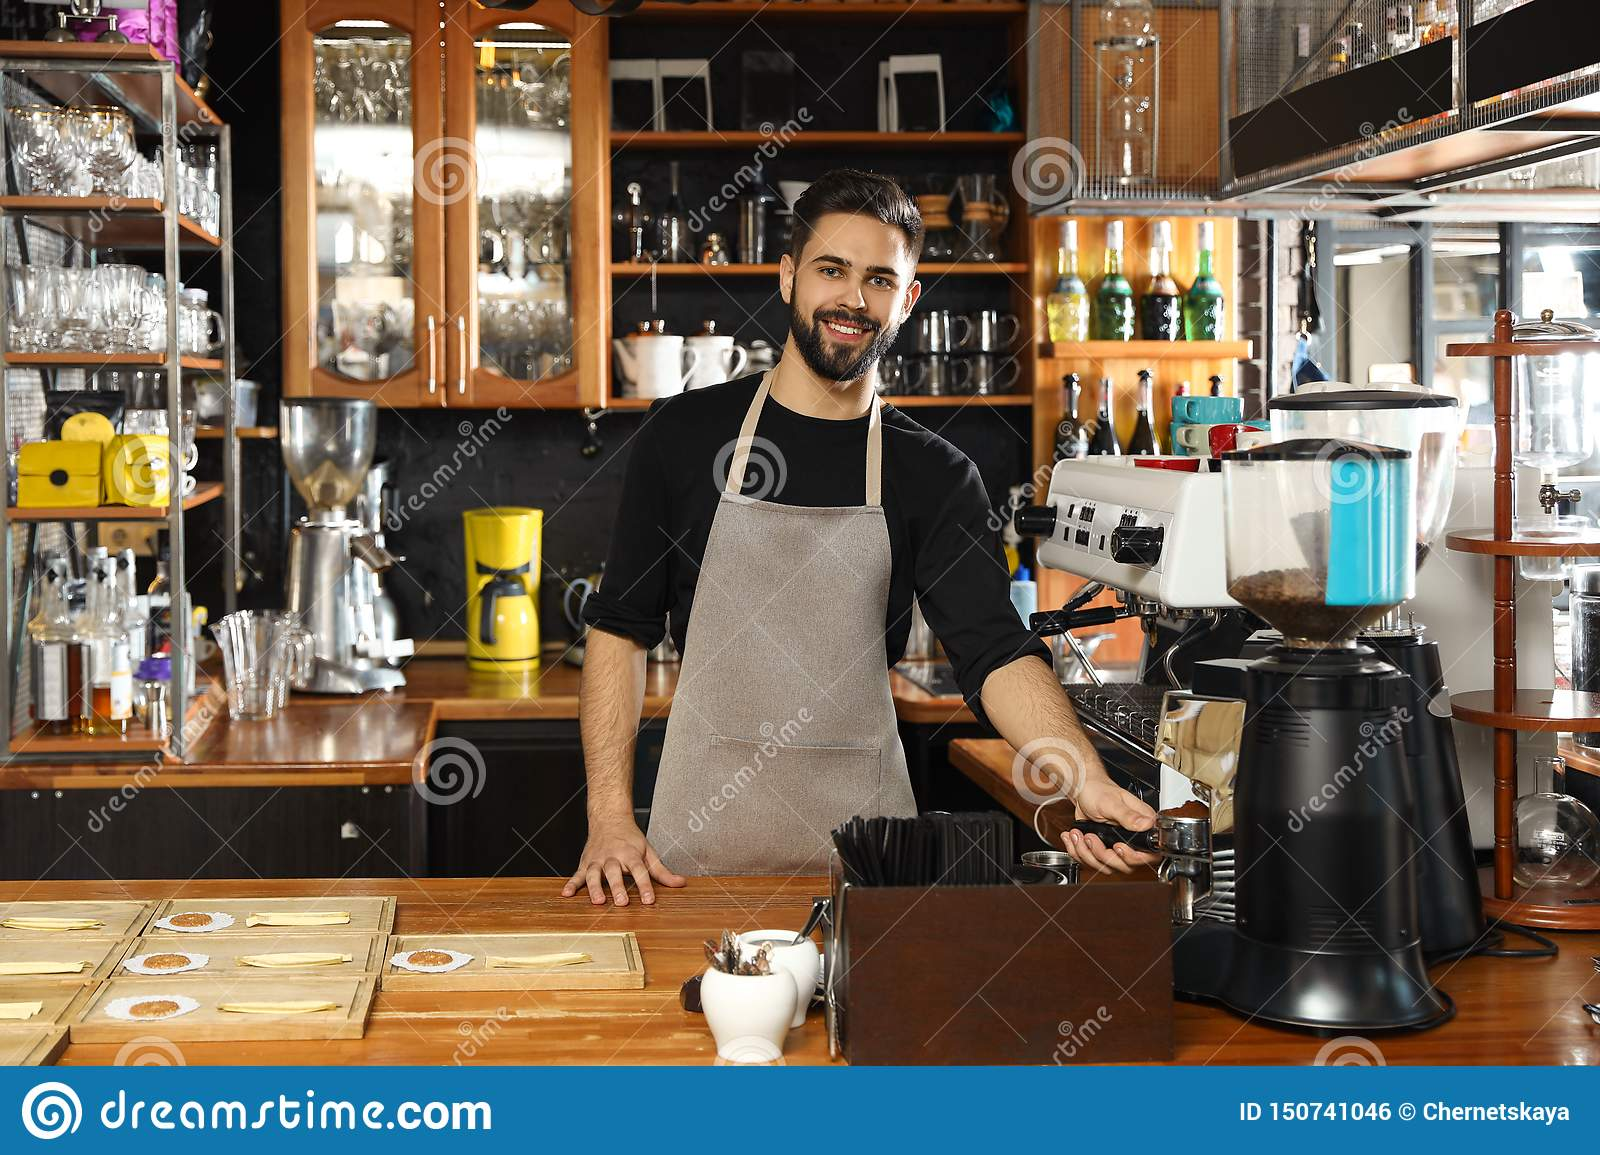 Barista pouring milled coffee from grinding machine into portafilter